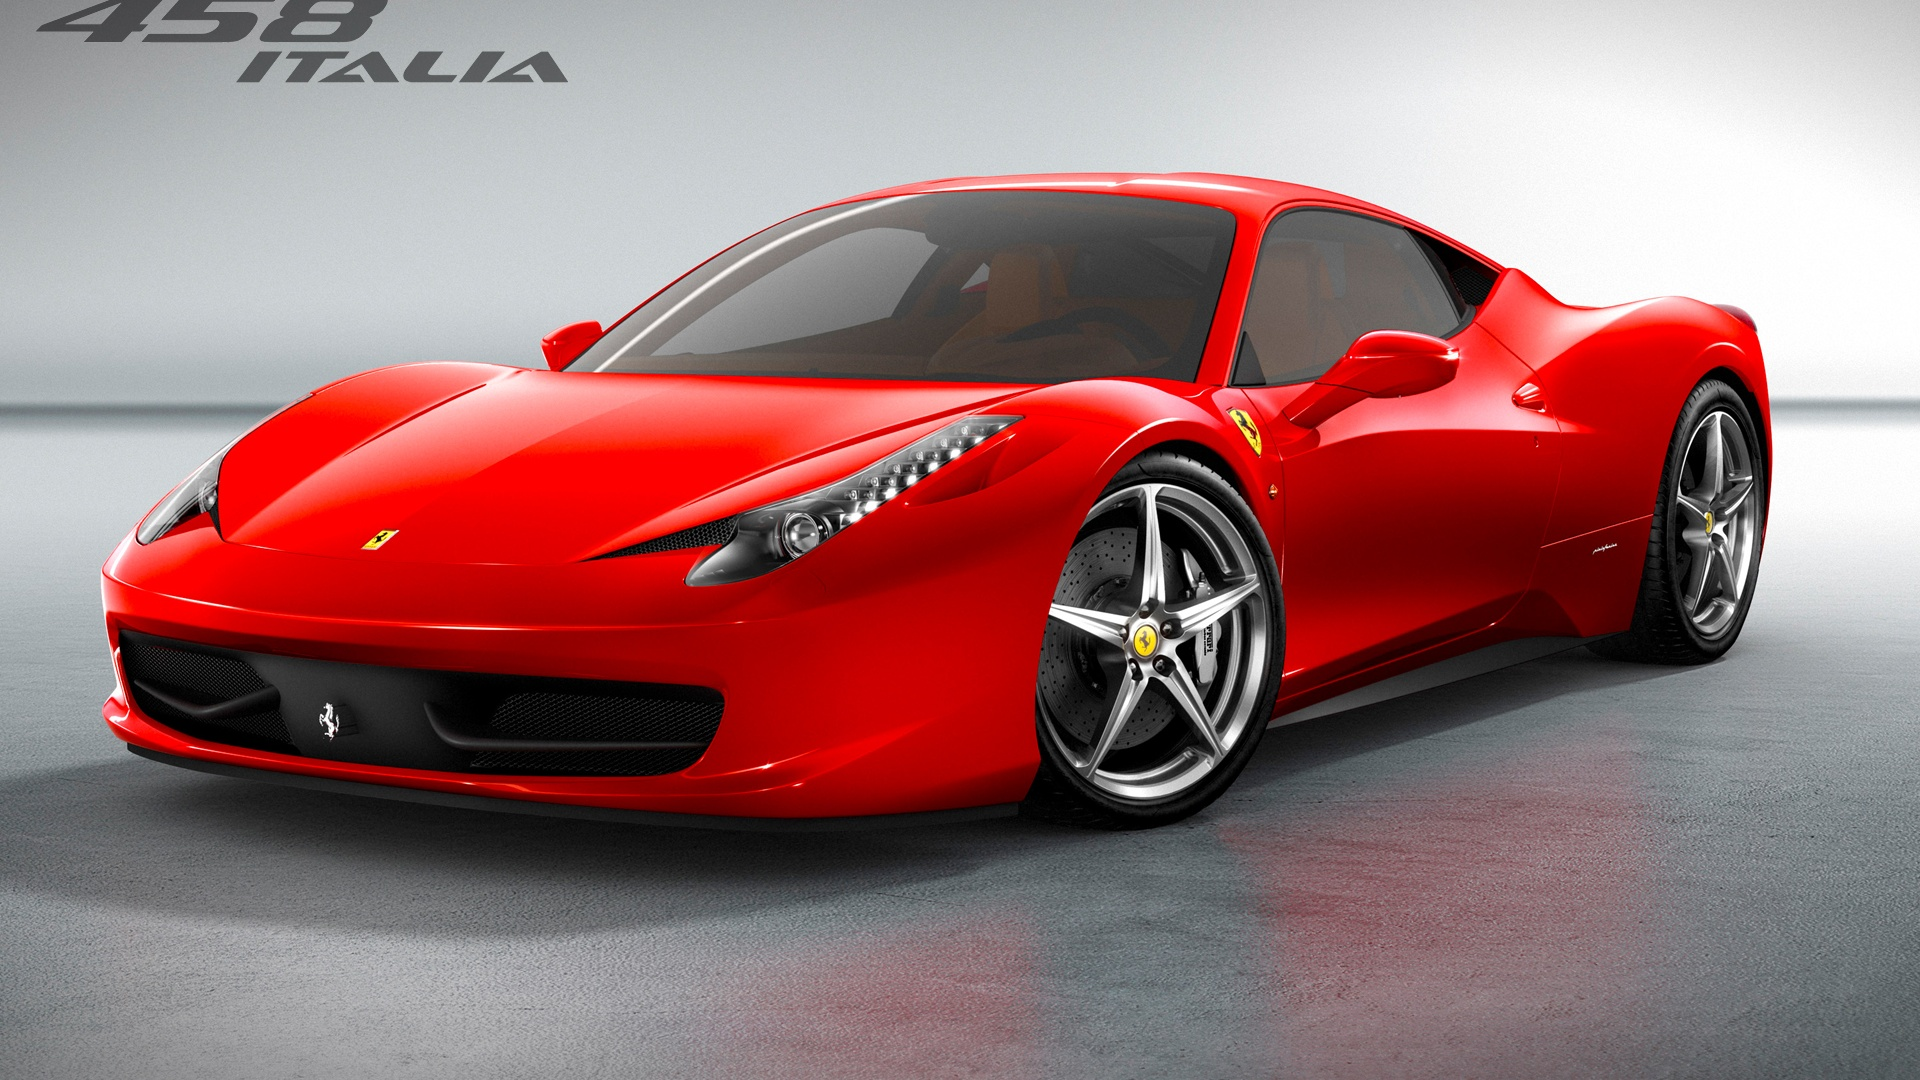 1920x1080 free download pictures of ferrari | 1920x1080 | 438 kB ...